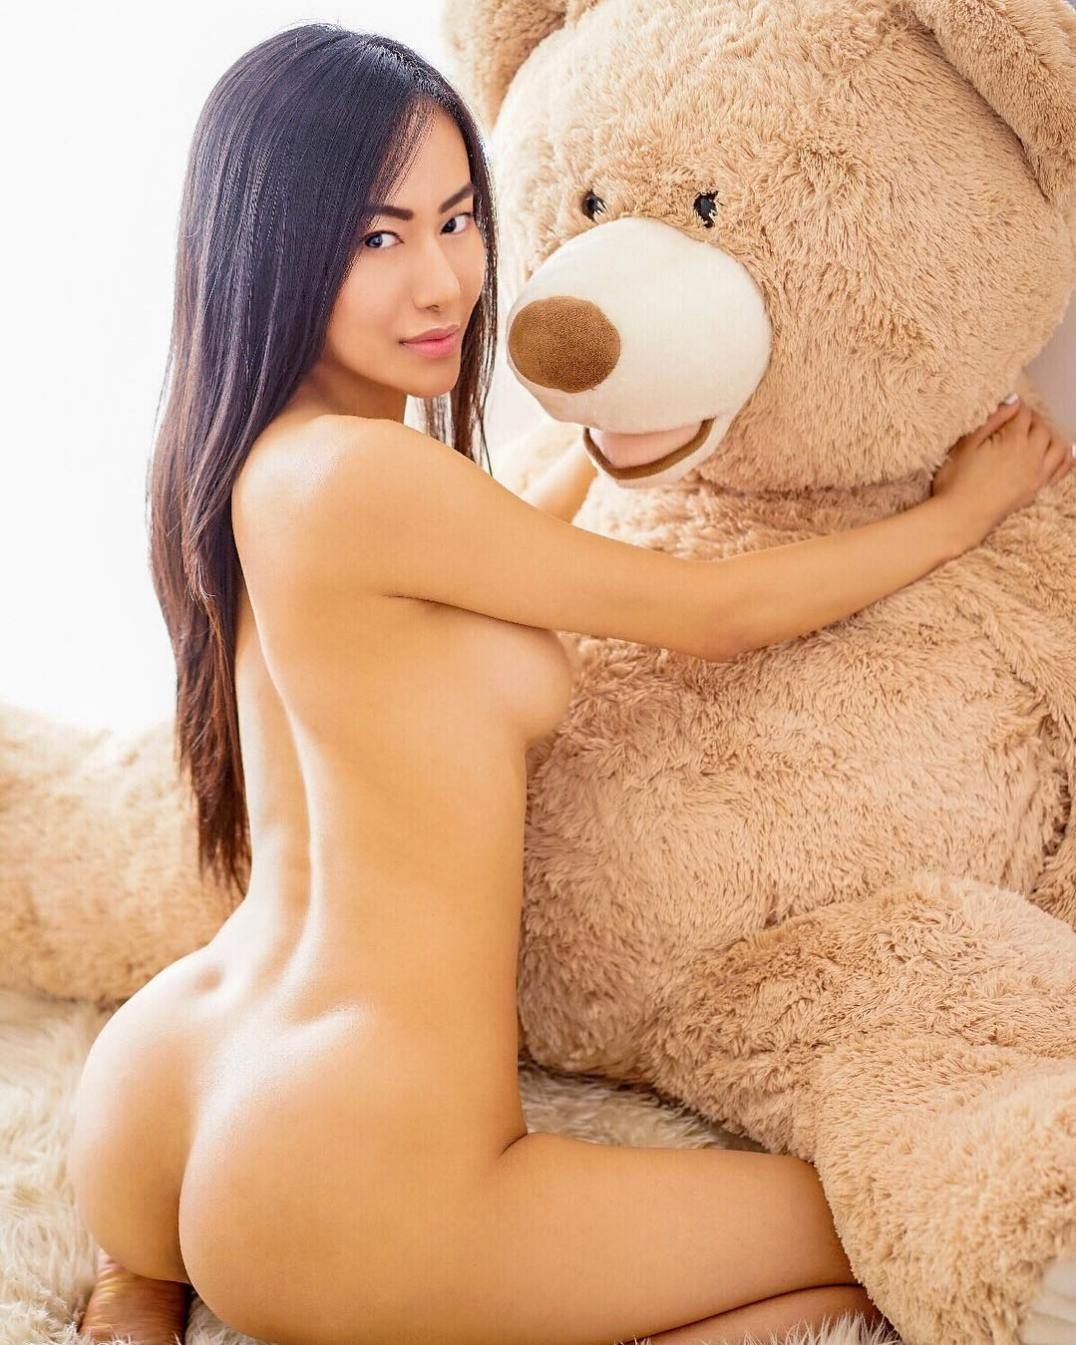 Chinese Sexy Model And Travel Blogger Girl Anna Xiao Leaked Naked Sexy Photos Anna Xiao